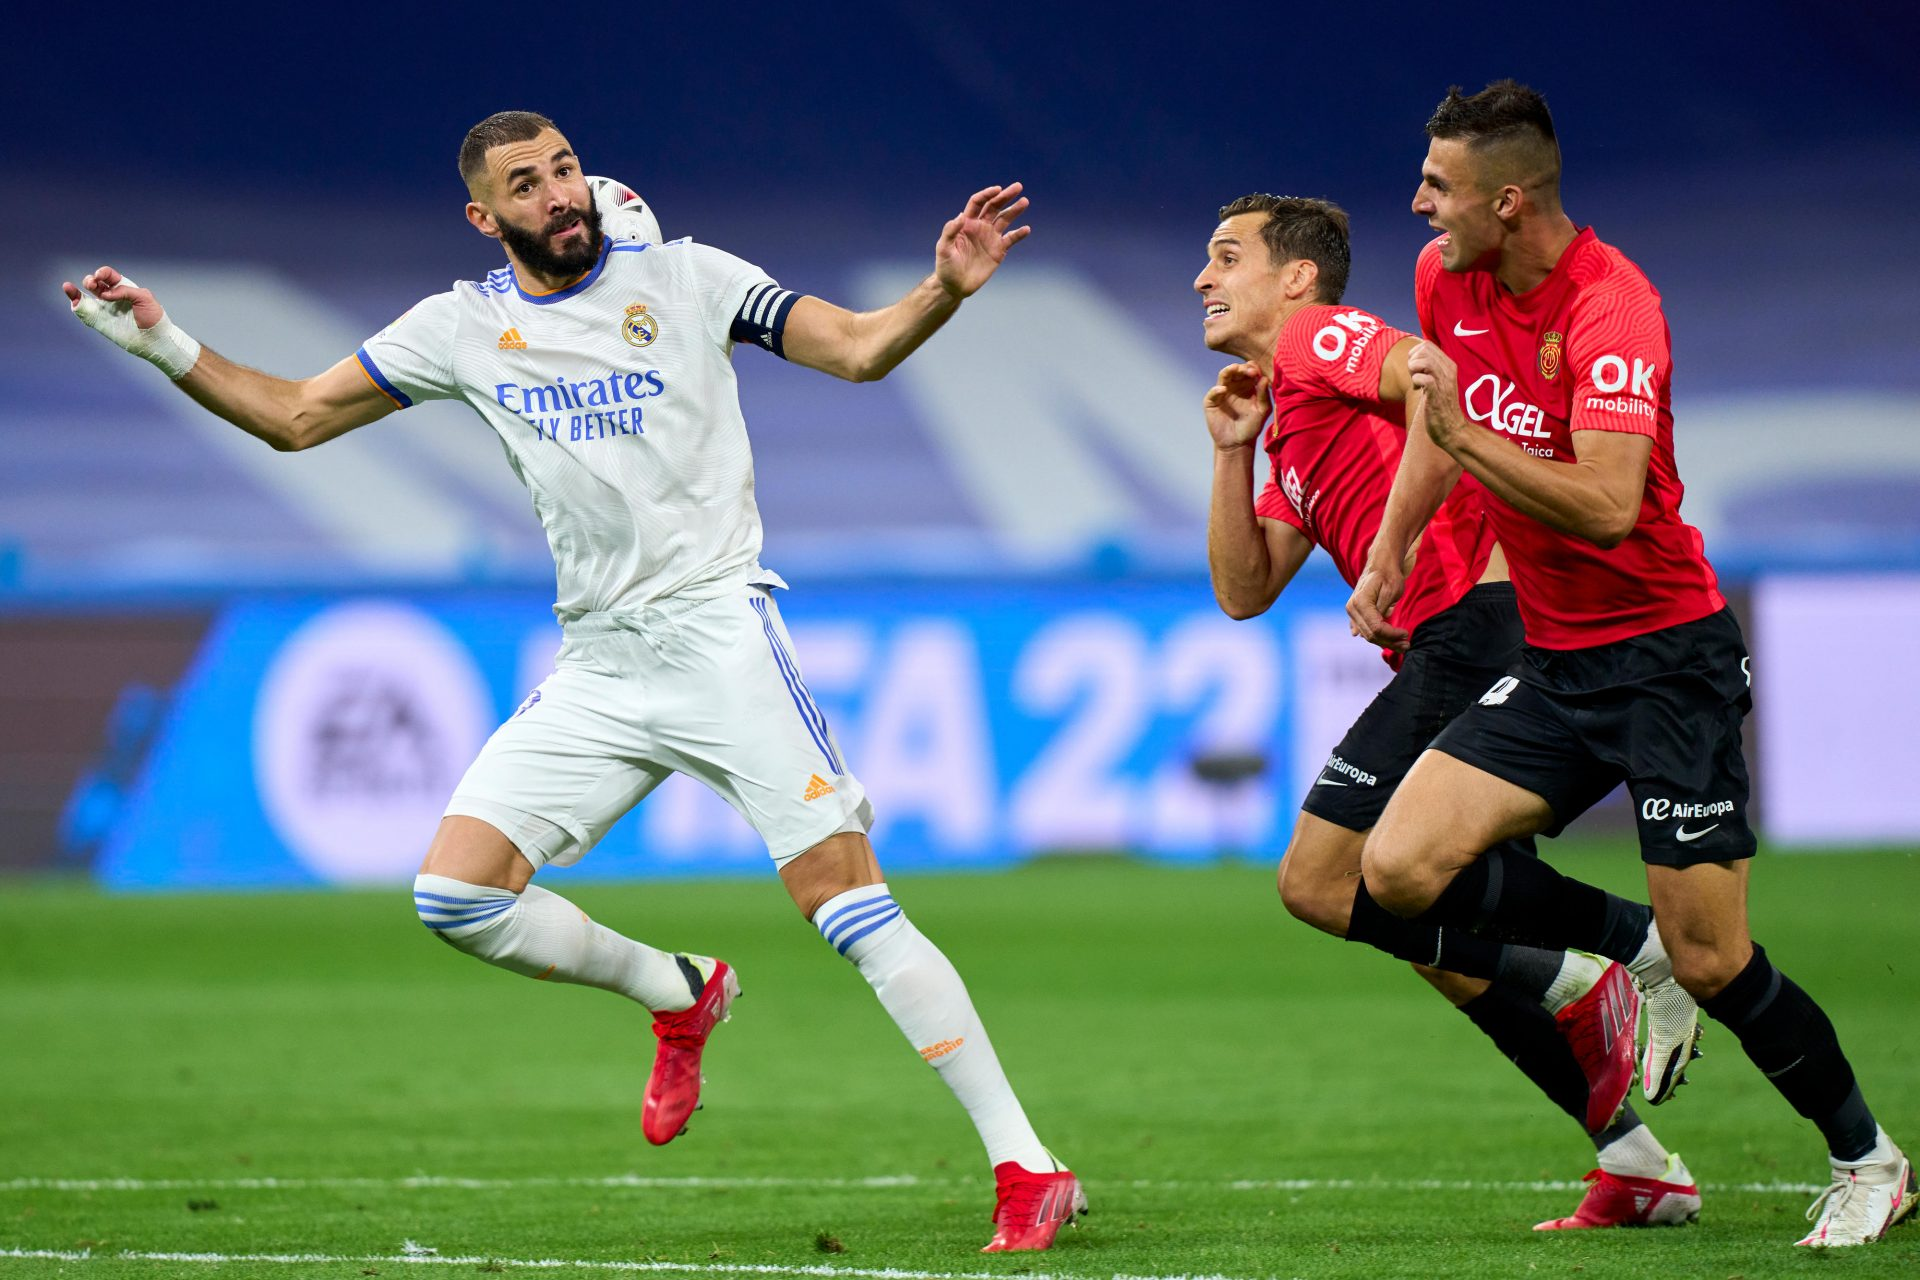 Spot the ball... Karim Benzema controls the ball before scoring against Mallorca in a recent match. Below, Real Madrid president Florentino Pérez. Credit: 2021 Quality Sport Images/Getty